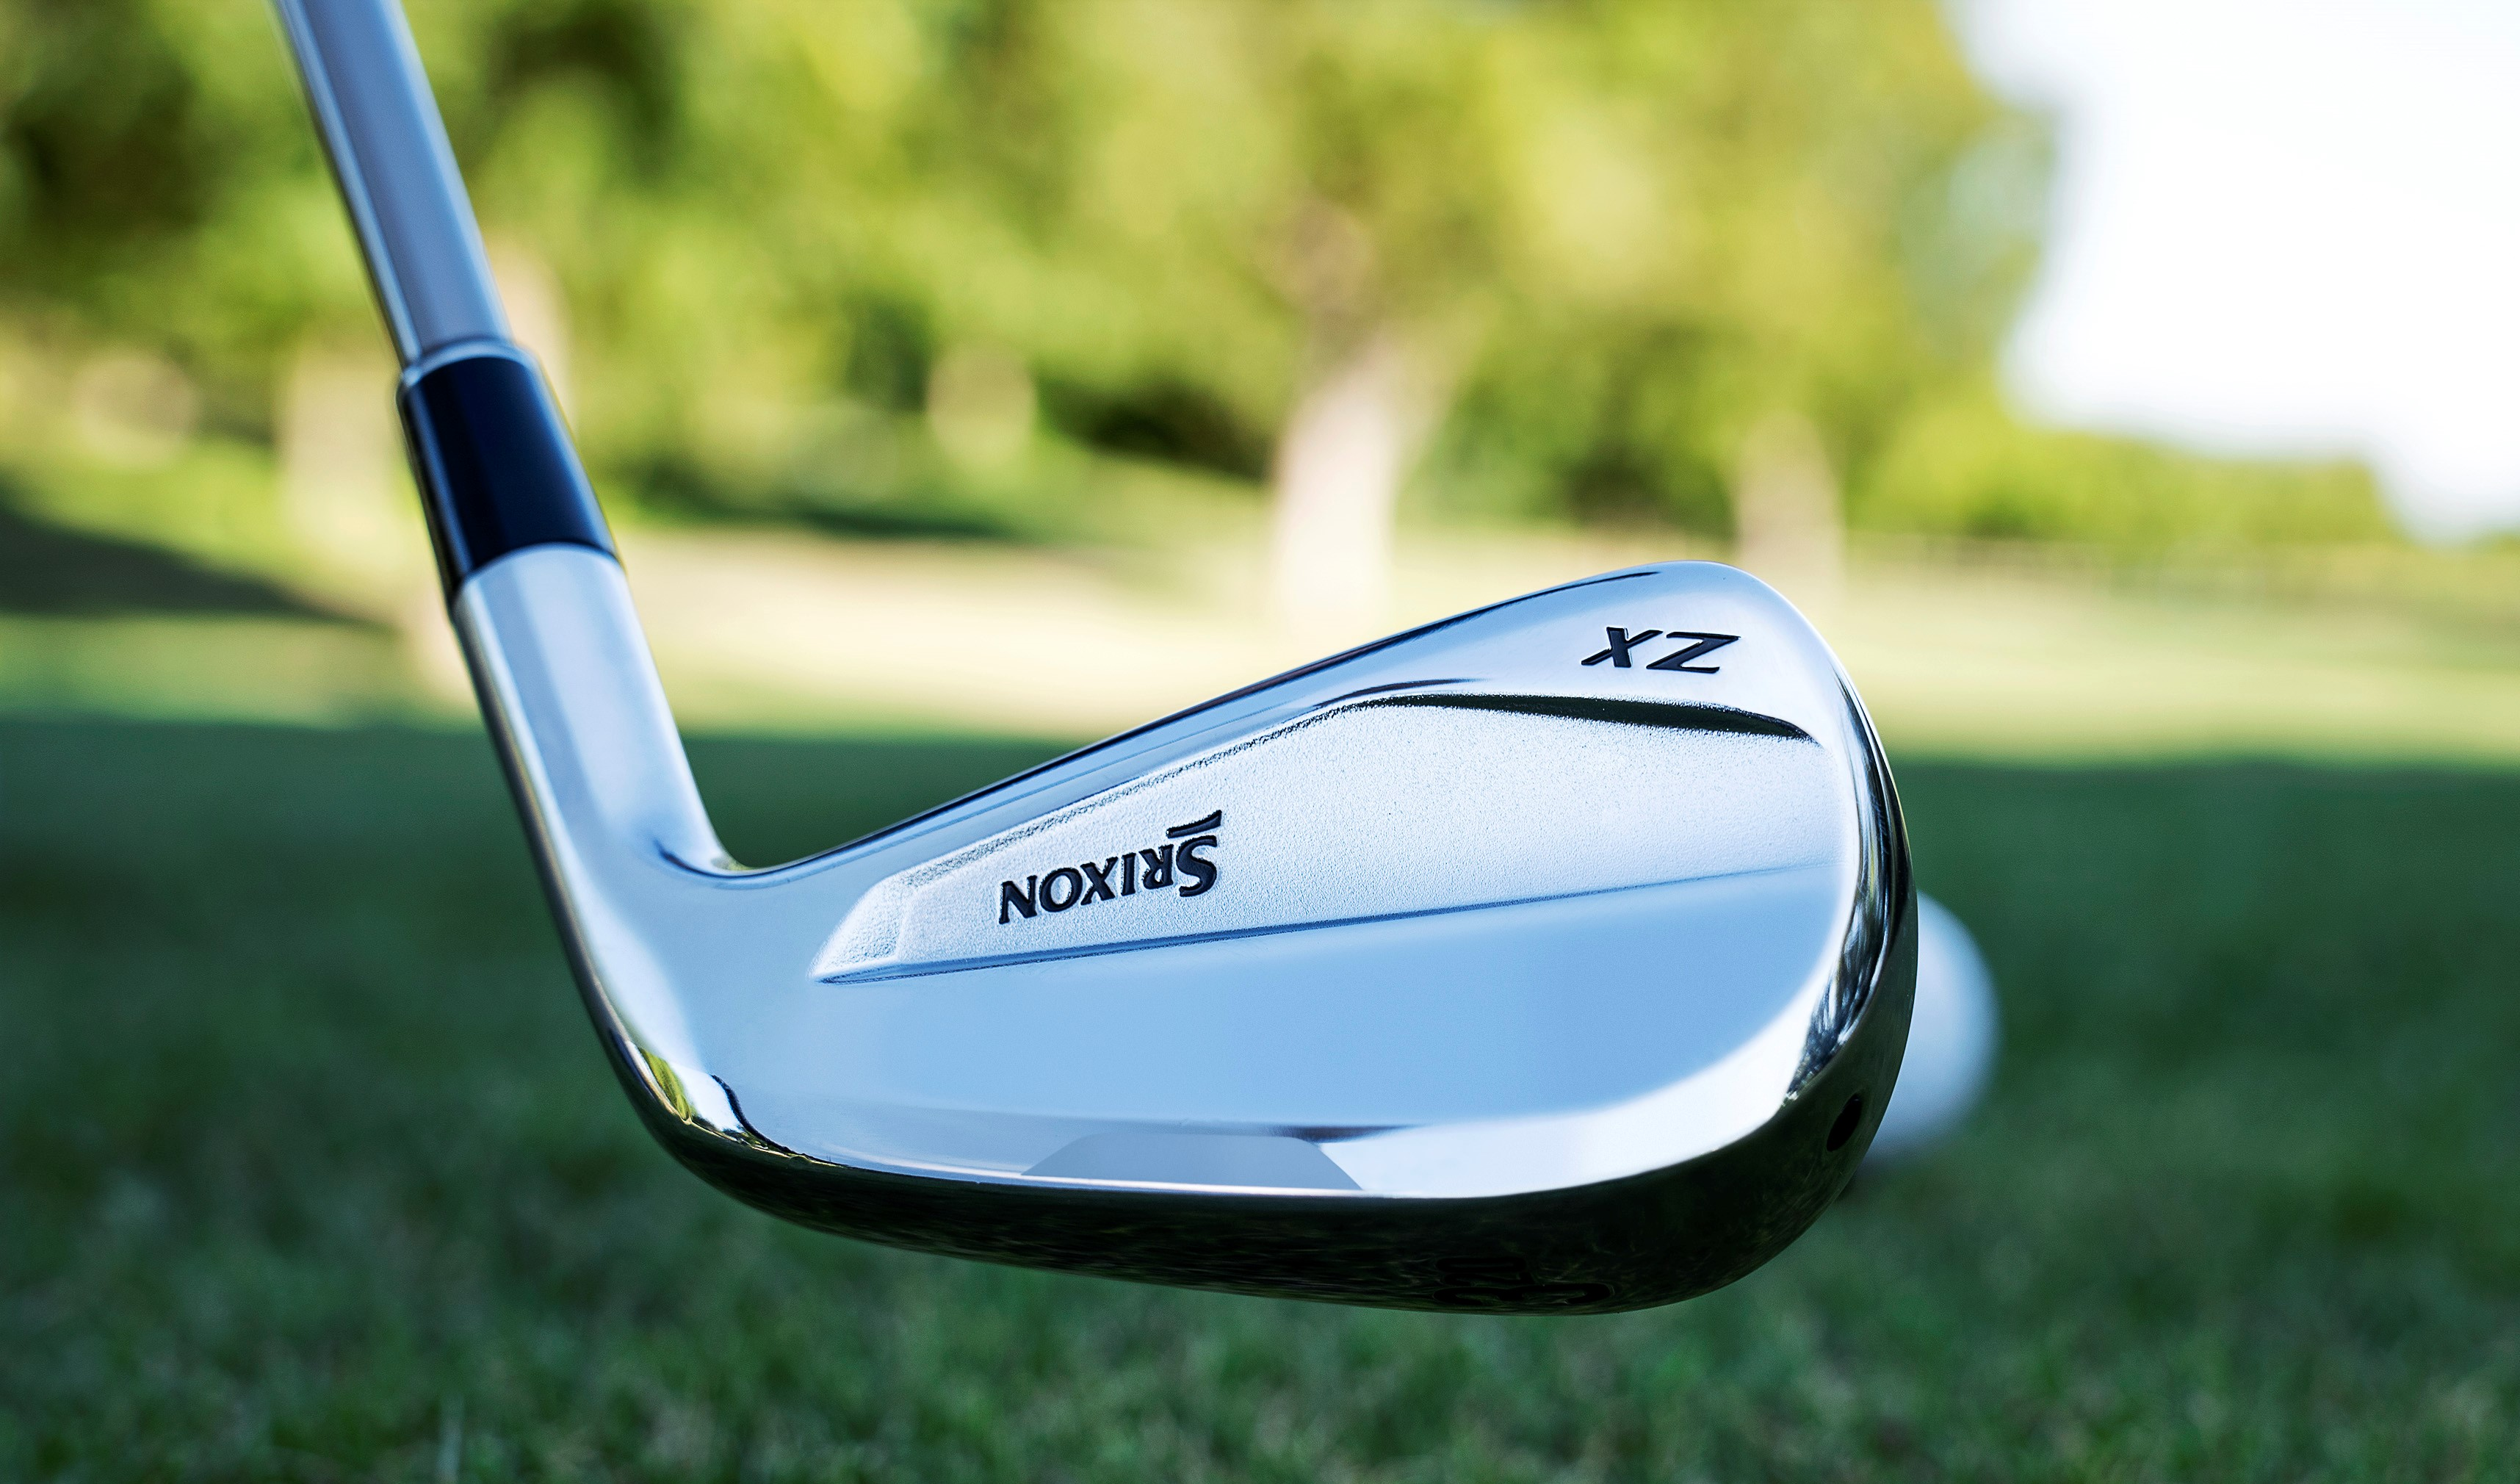 Srixon ZX Irons: Why upgrading your irons will improve your game